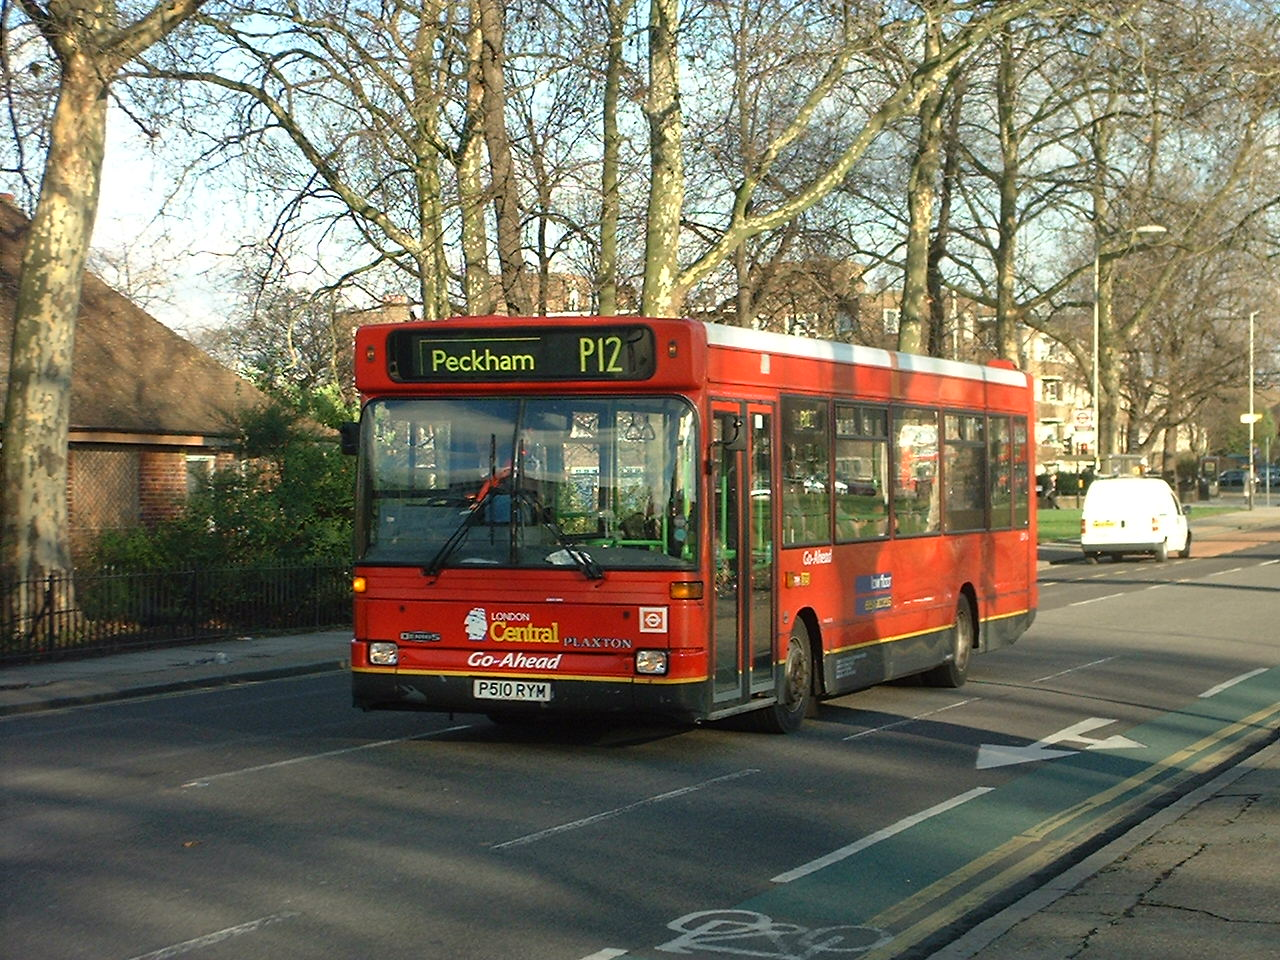 file:london bus route p12 - wikimedia commons